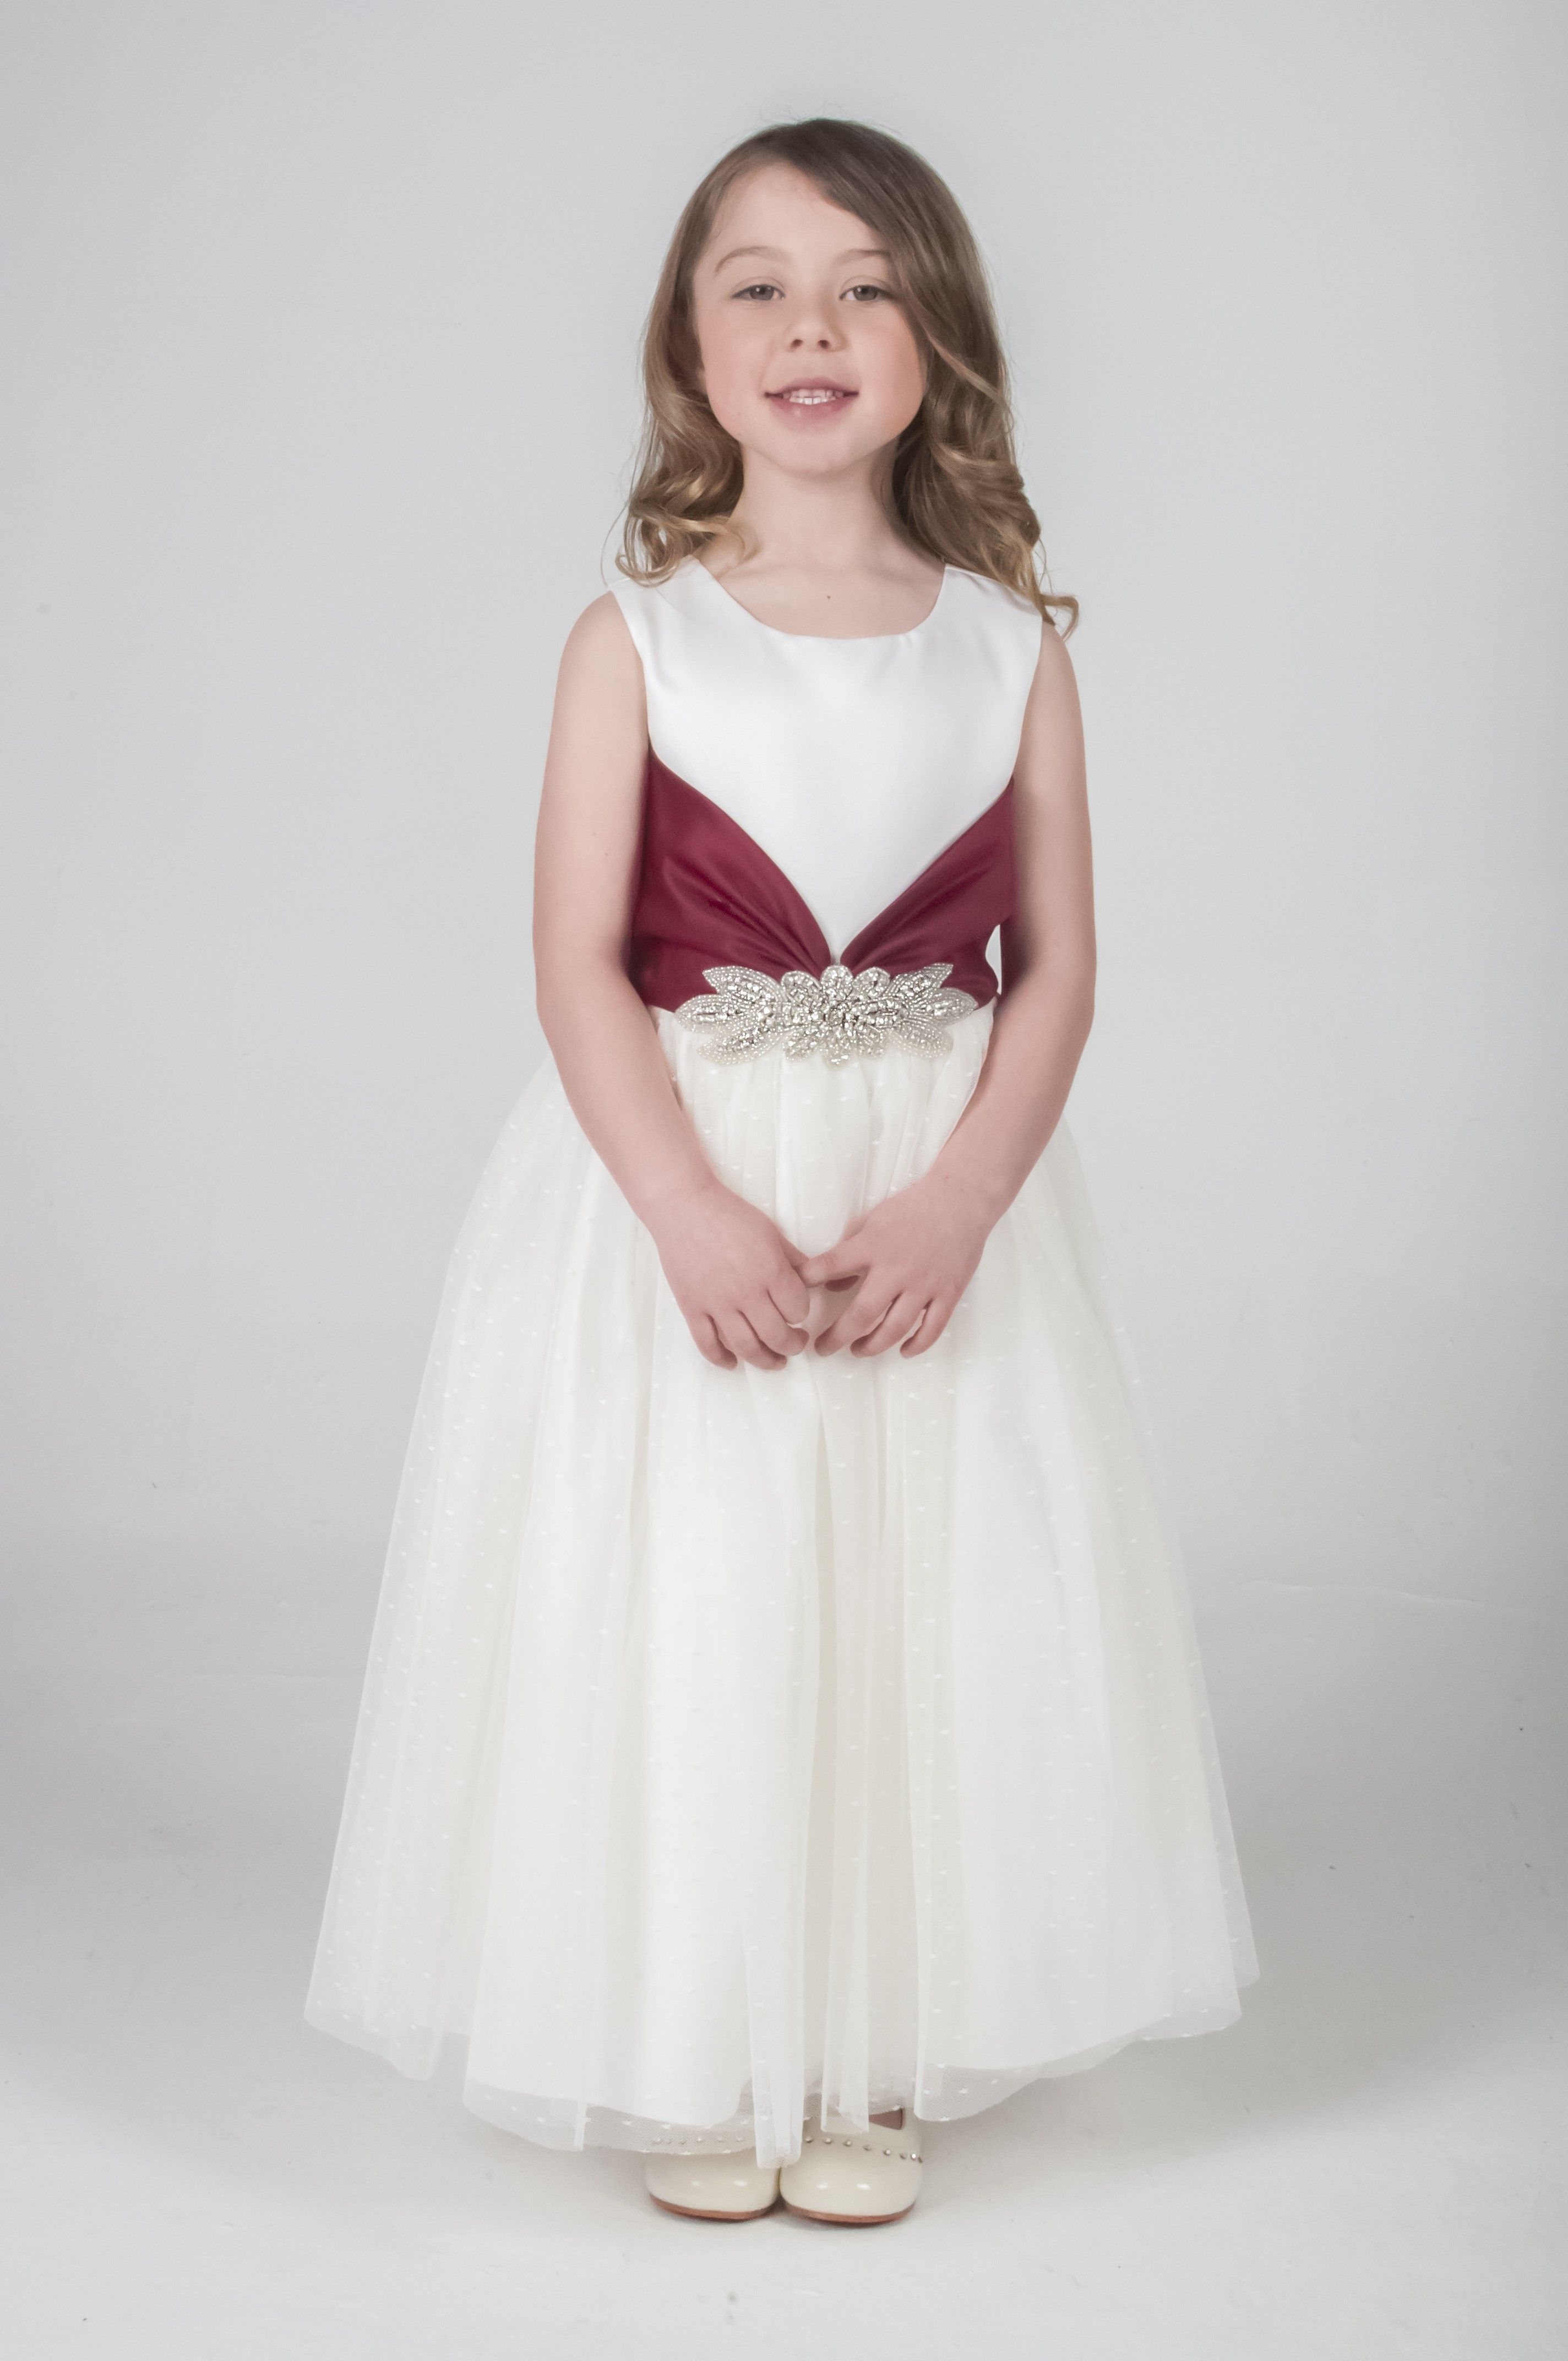 2019 year style- Flower Ivory girl dresses uk pictures